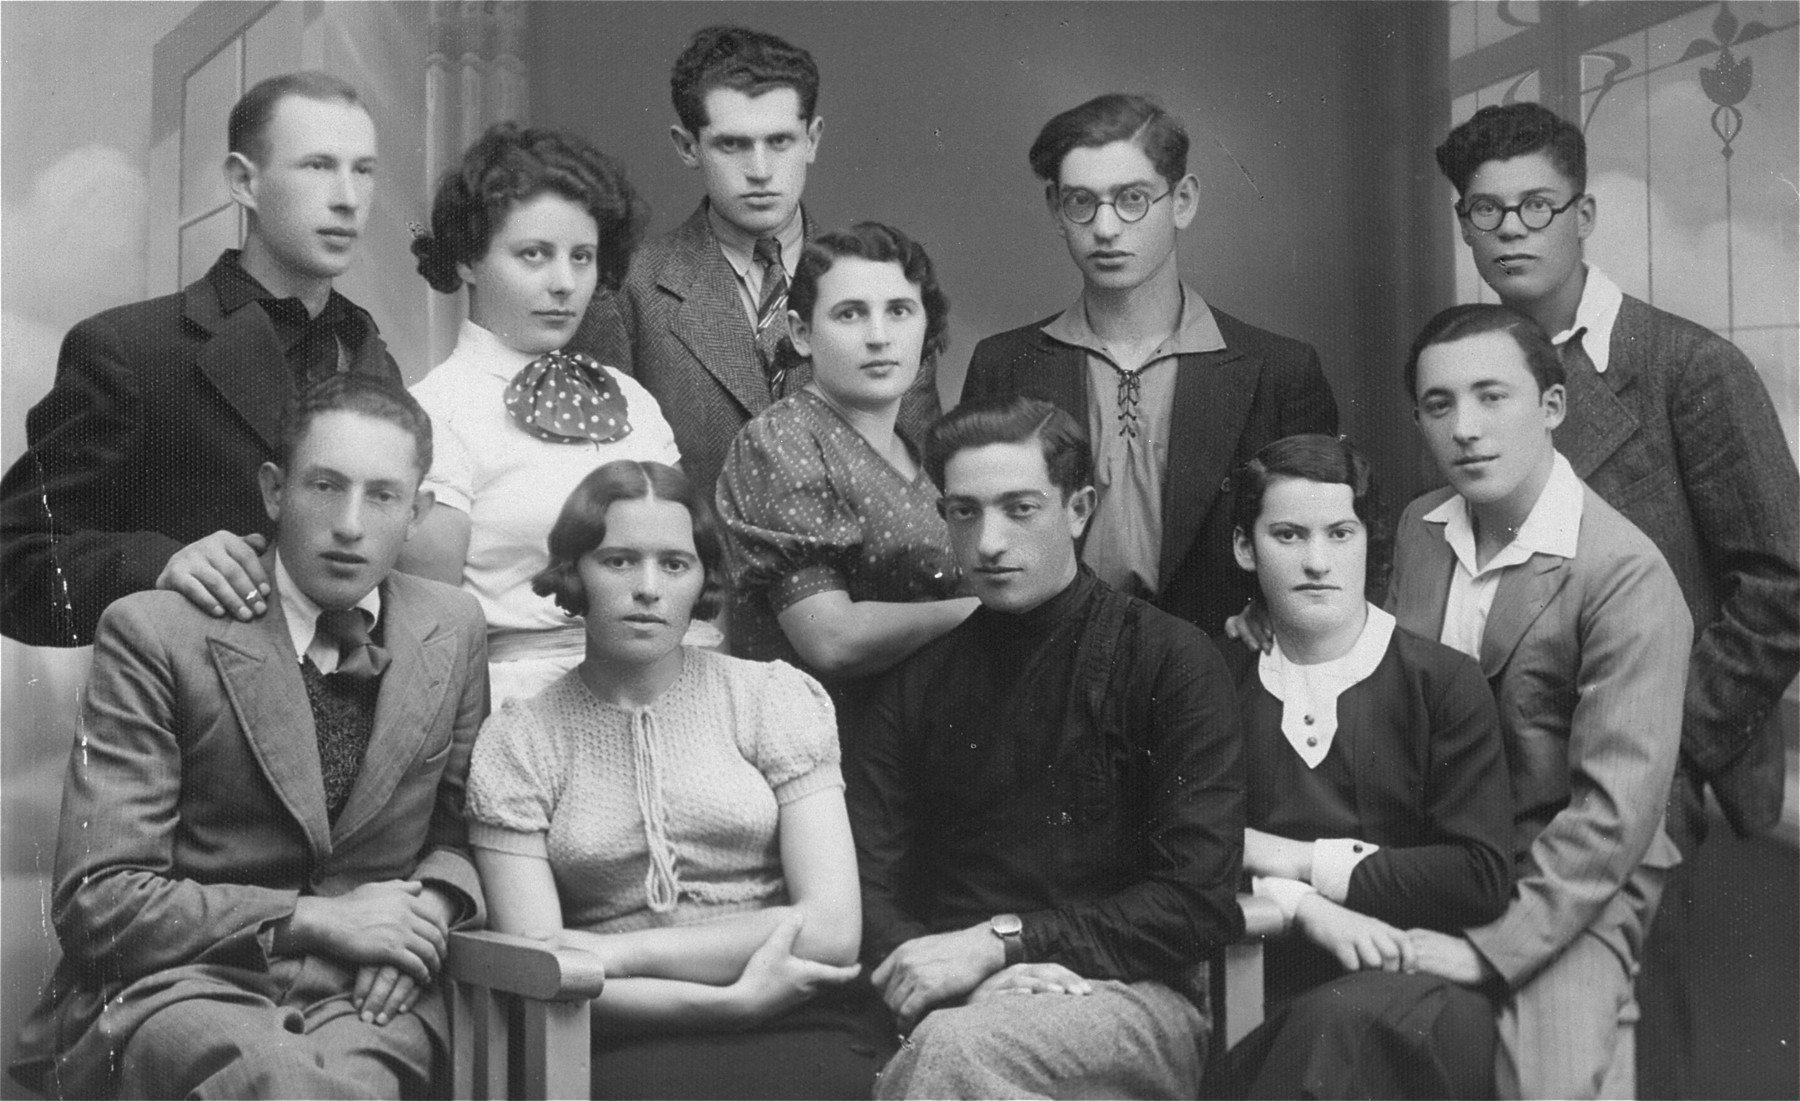 Group portrait of members of a hachshara (Zionist collective) in Lithuania.    Eliezer Kaplan is pictured in the front row, center.